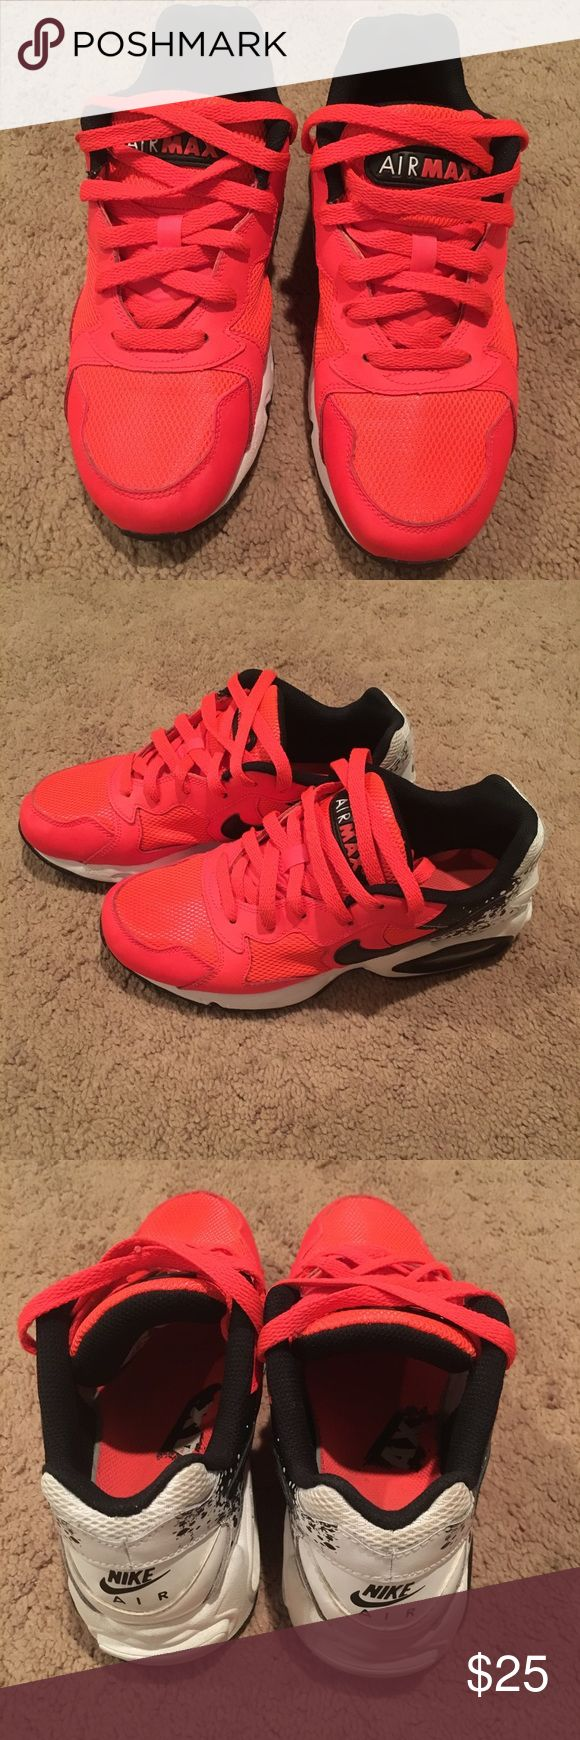 Women's Nike Air Max Women's Nike Air Max Size: 6.5 Some wear. Color: Neon Orange/pinkish, black & white Nike Shoes Sneakers